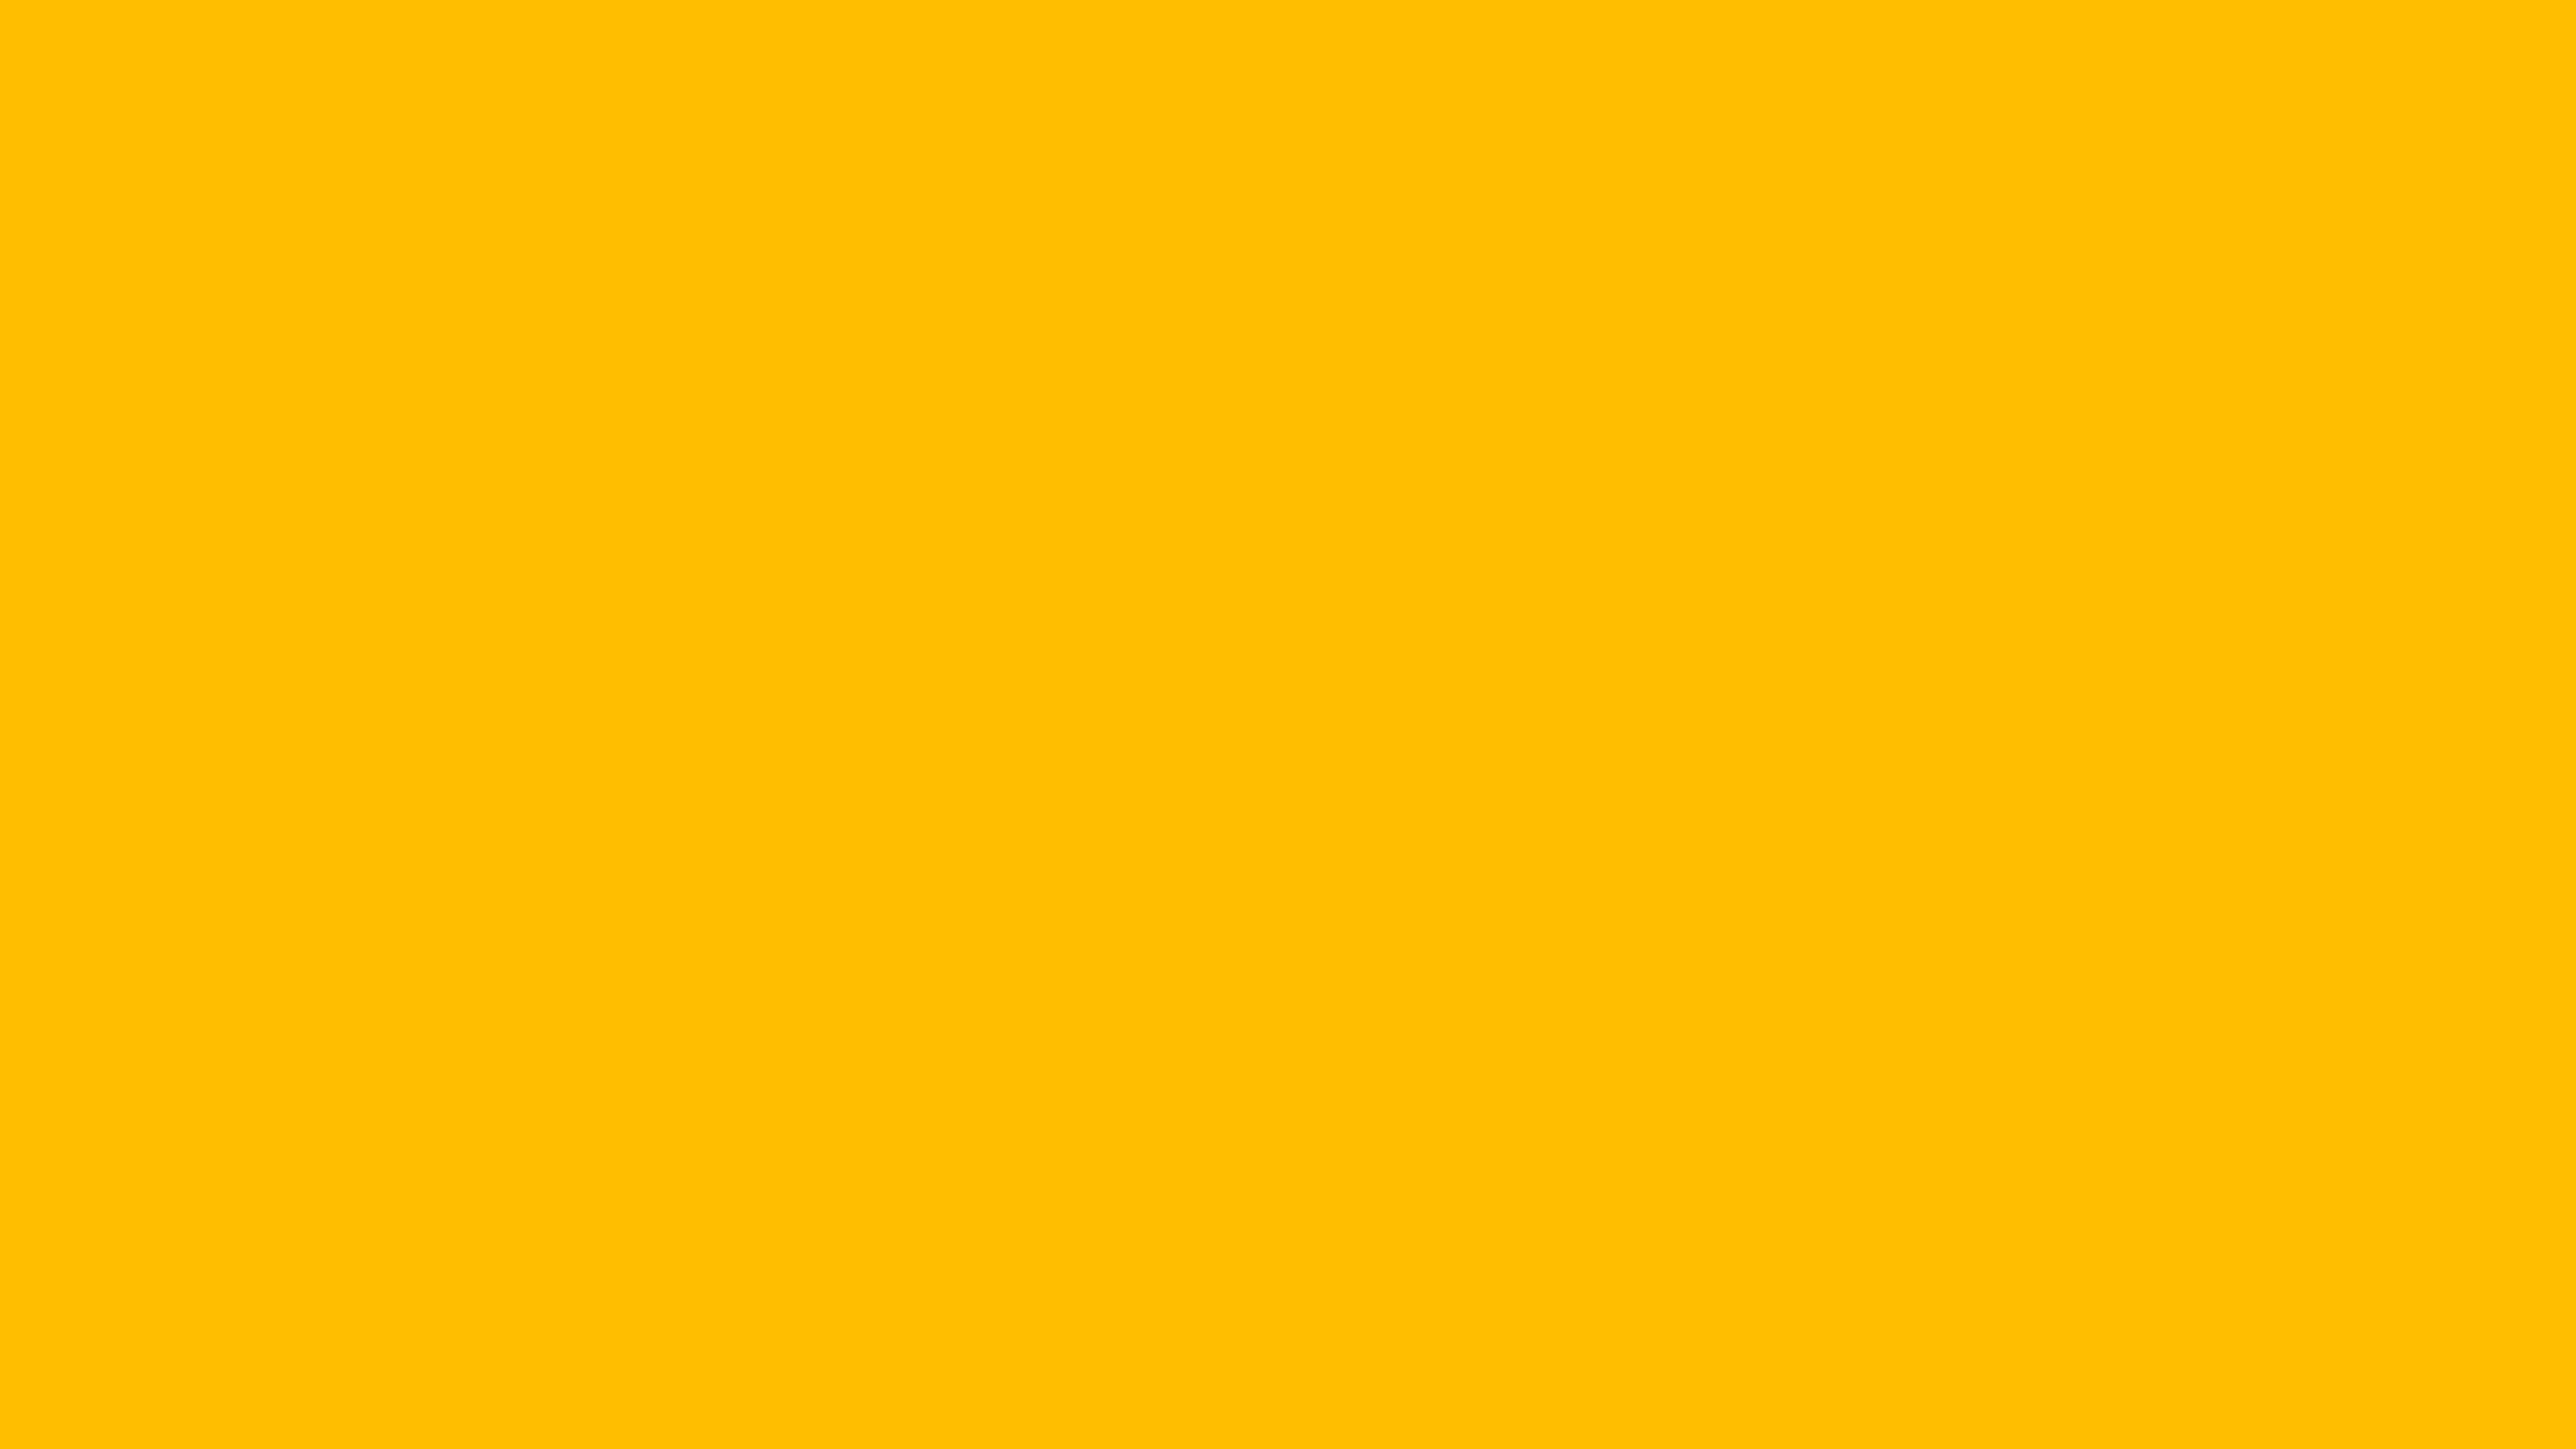 5120x2880 Amber Solid Color Background